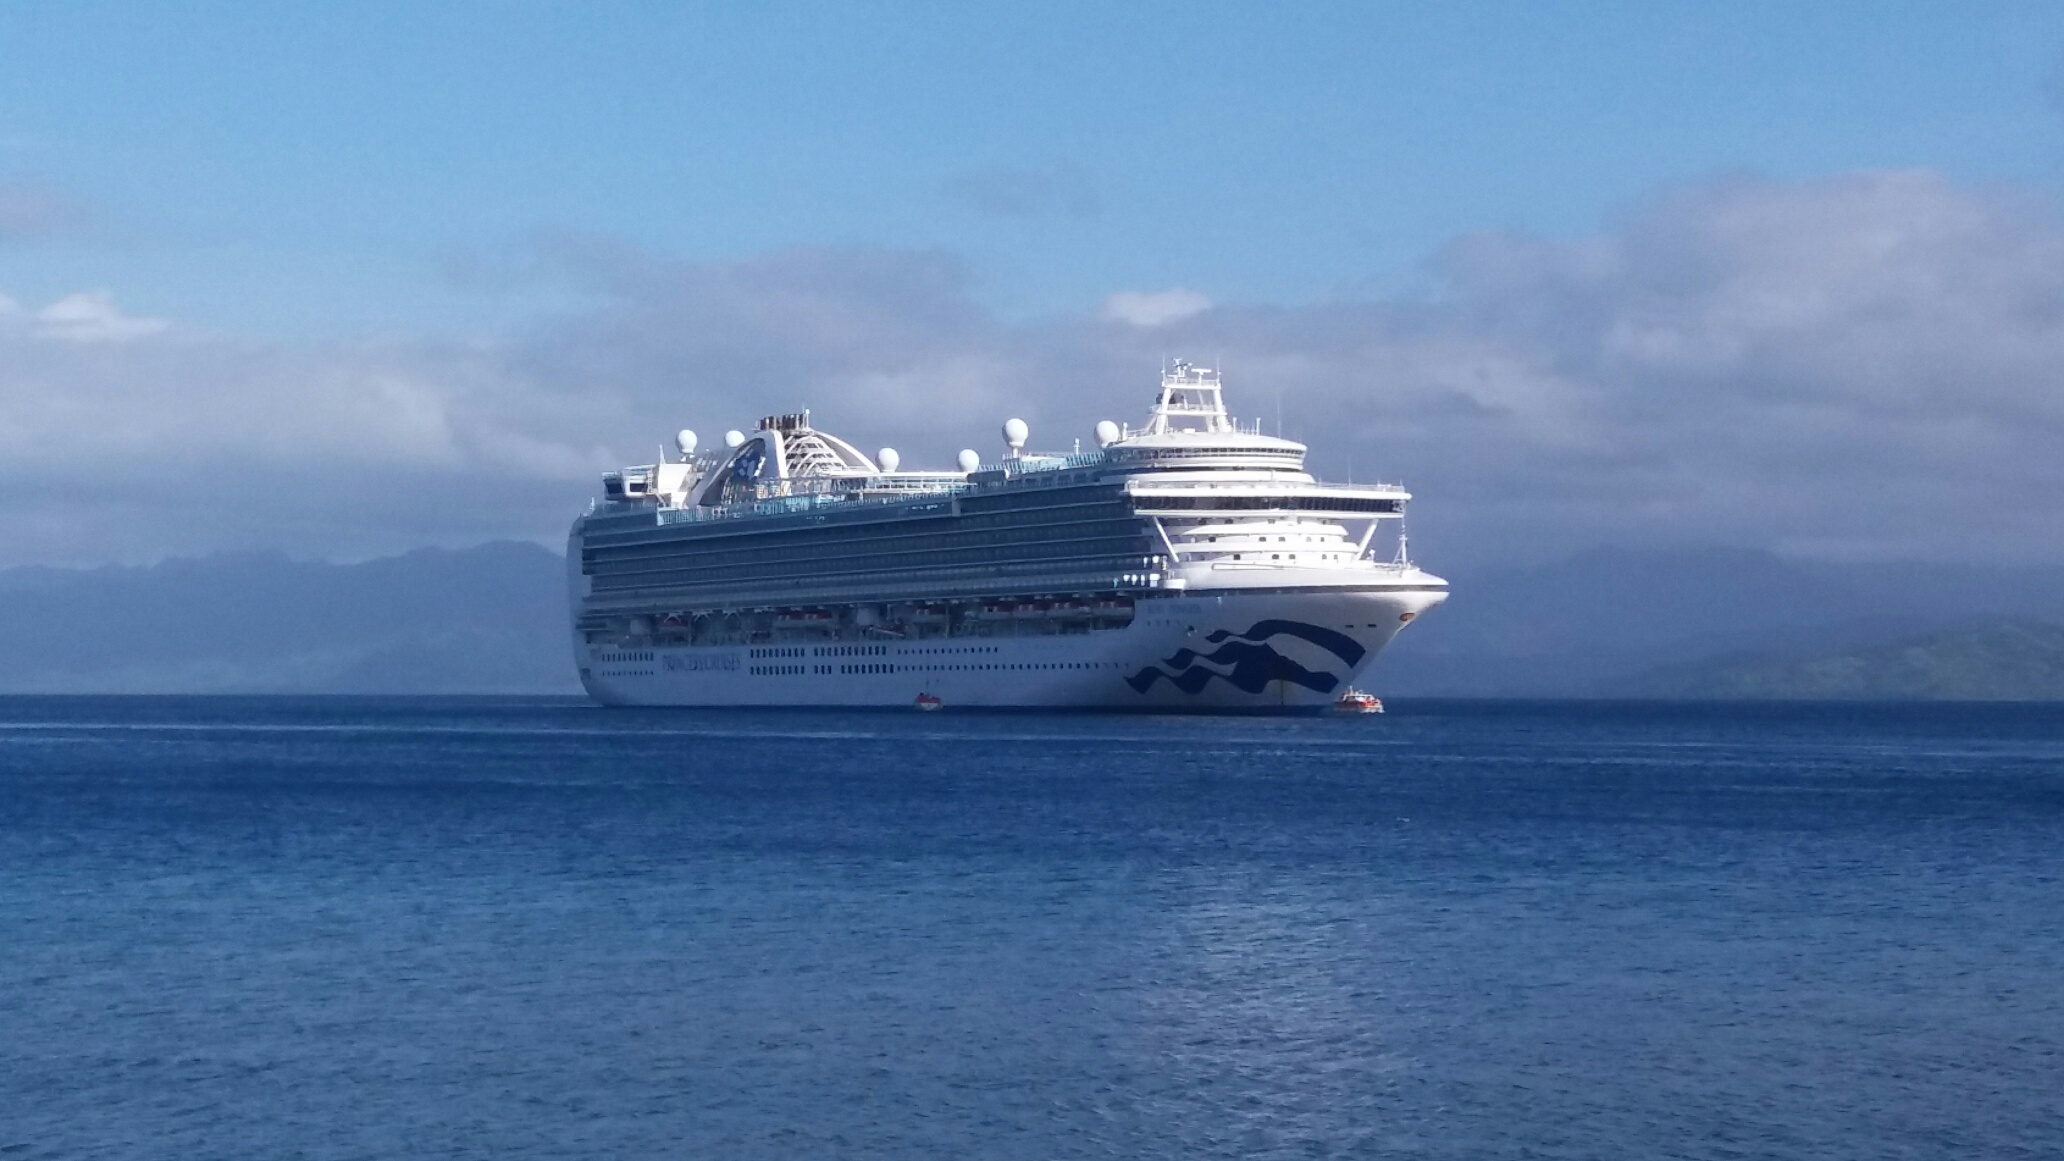 The Princess Cruises lines vessel